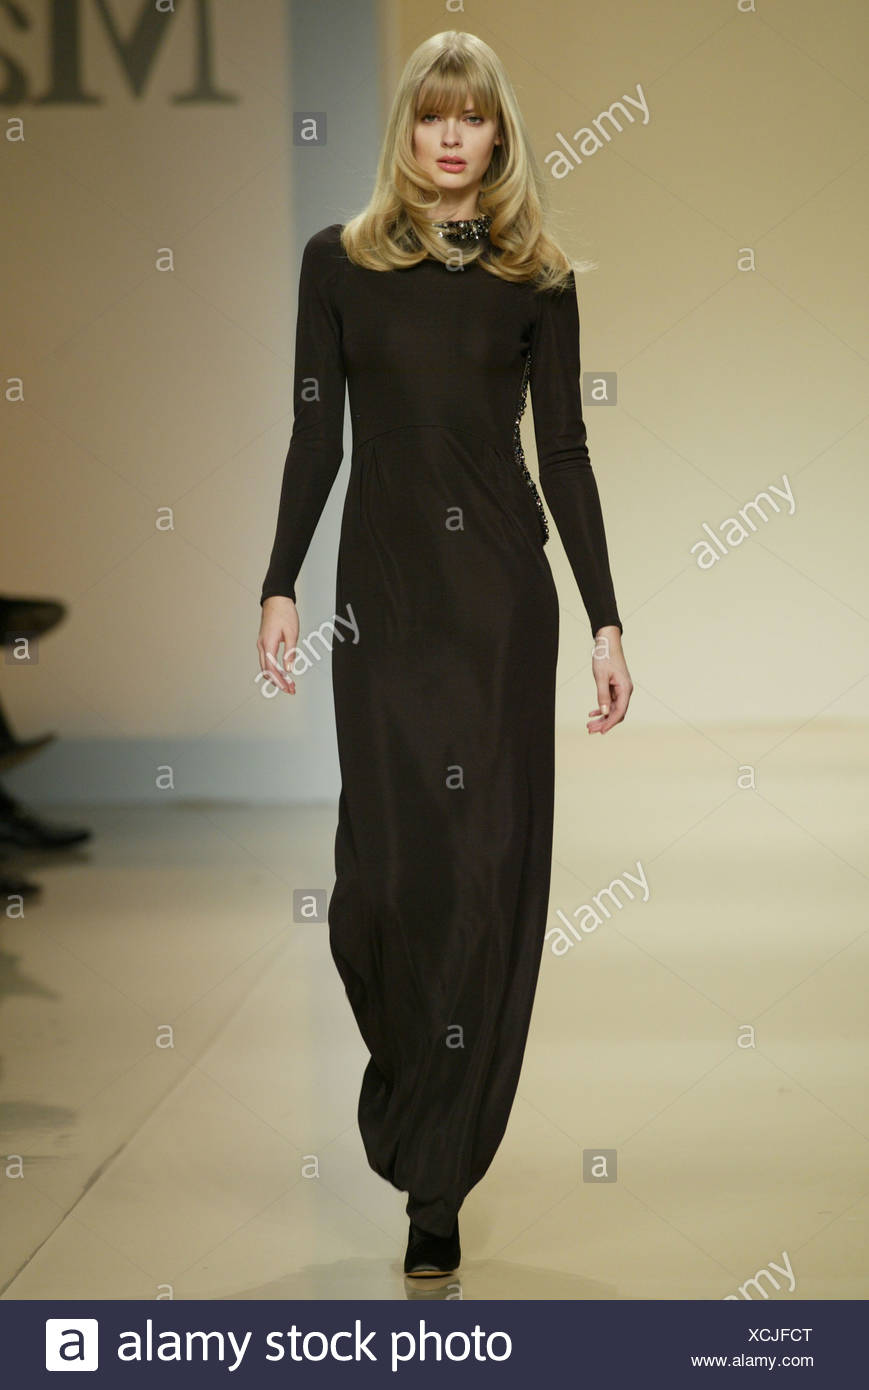 Black Dress With Sequins Stockfotos & Black Dress With Sequins ...